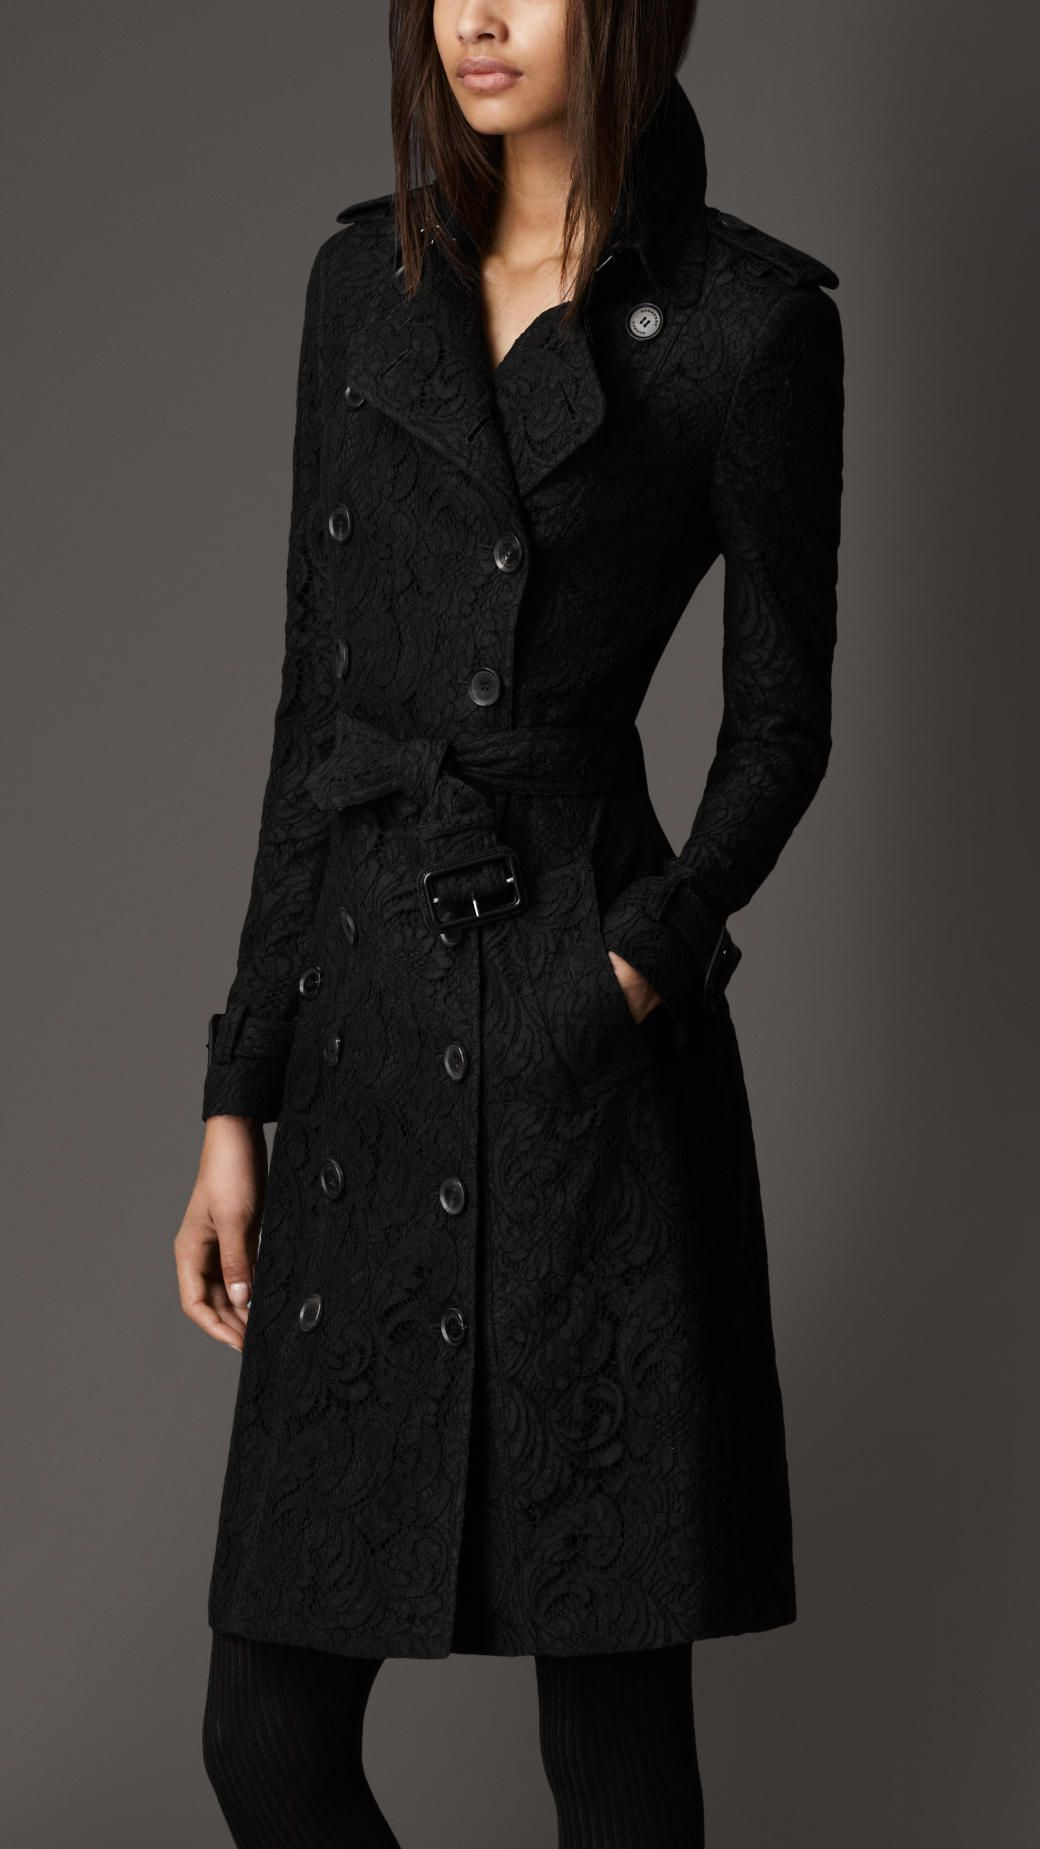 Long Lace Trench Coat Burberry 2095 Coat, Clothes